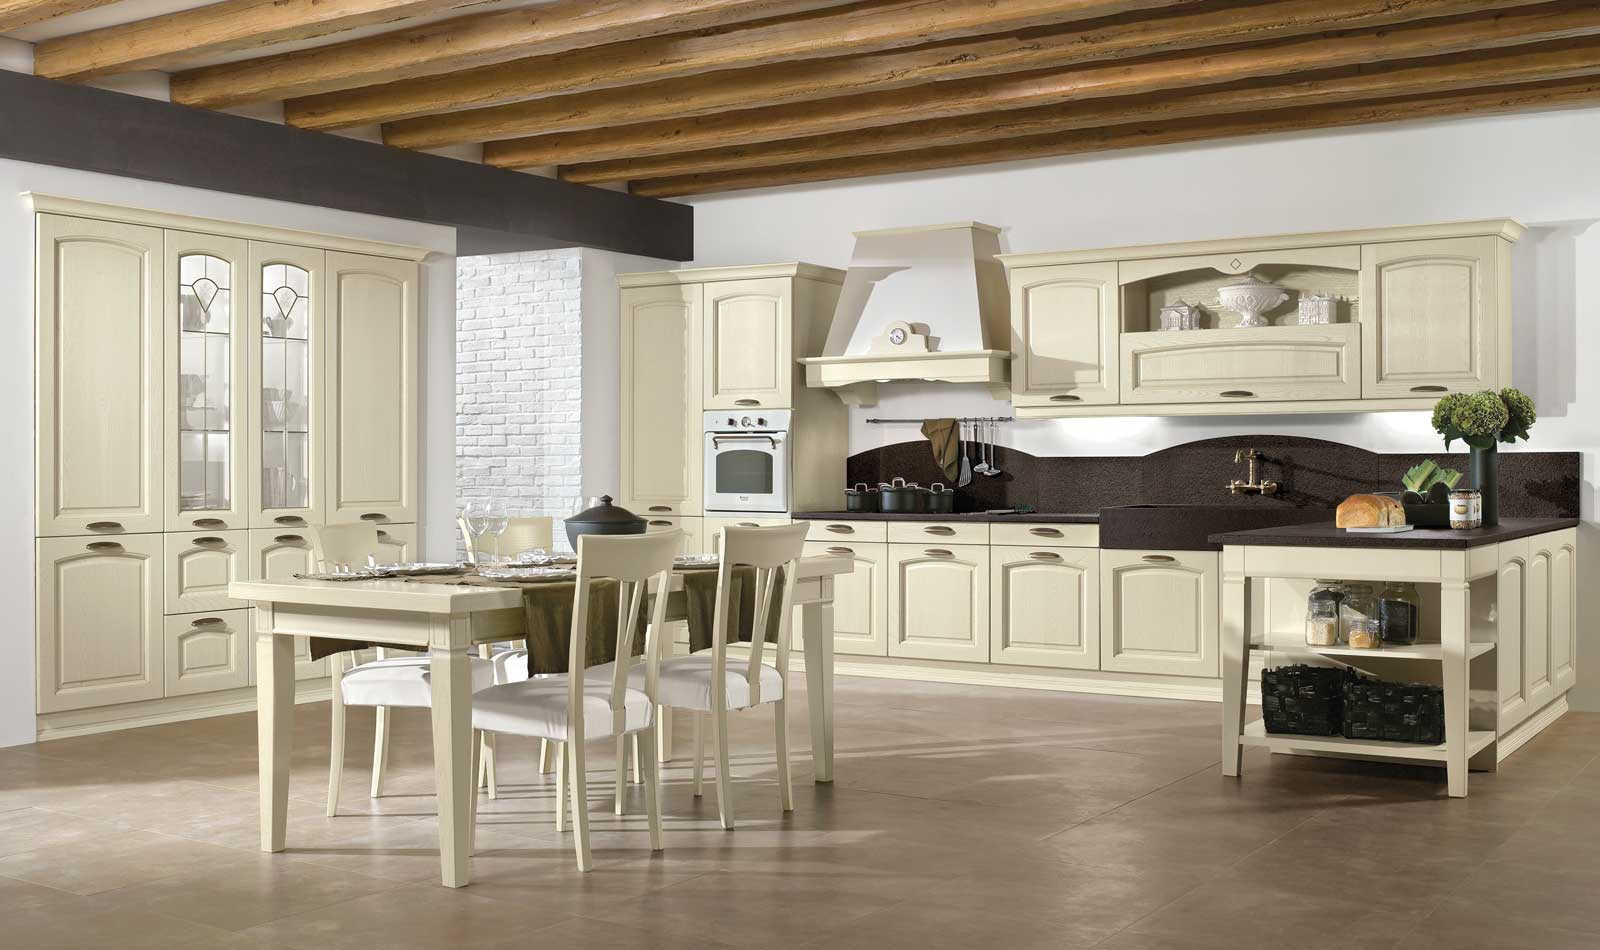 Emejing Cucine Country Padova Pictures - Design & Ideas 2017 ...